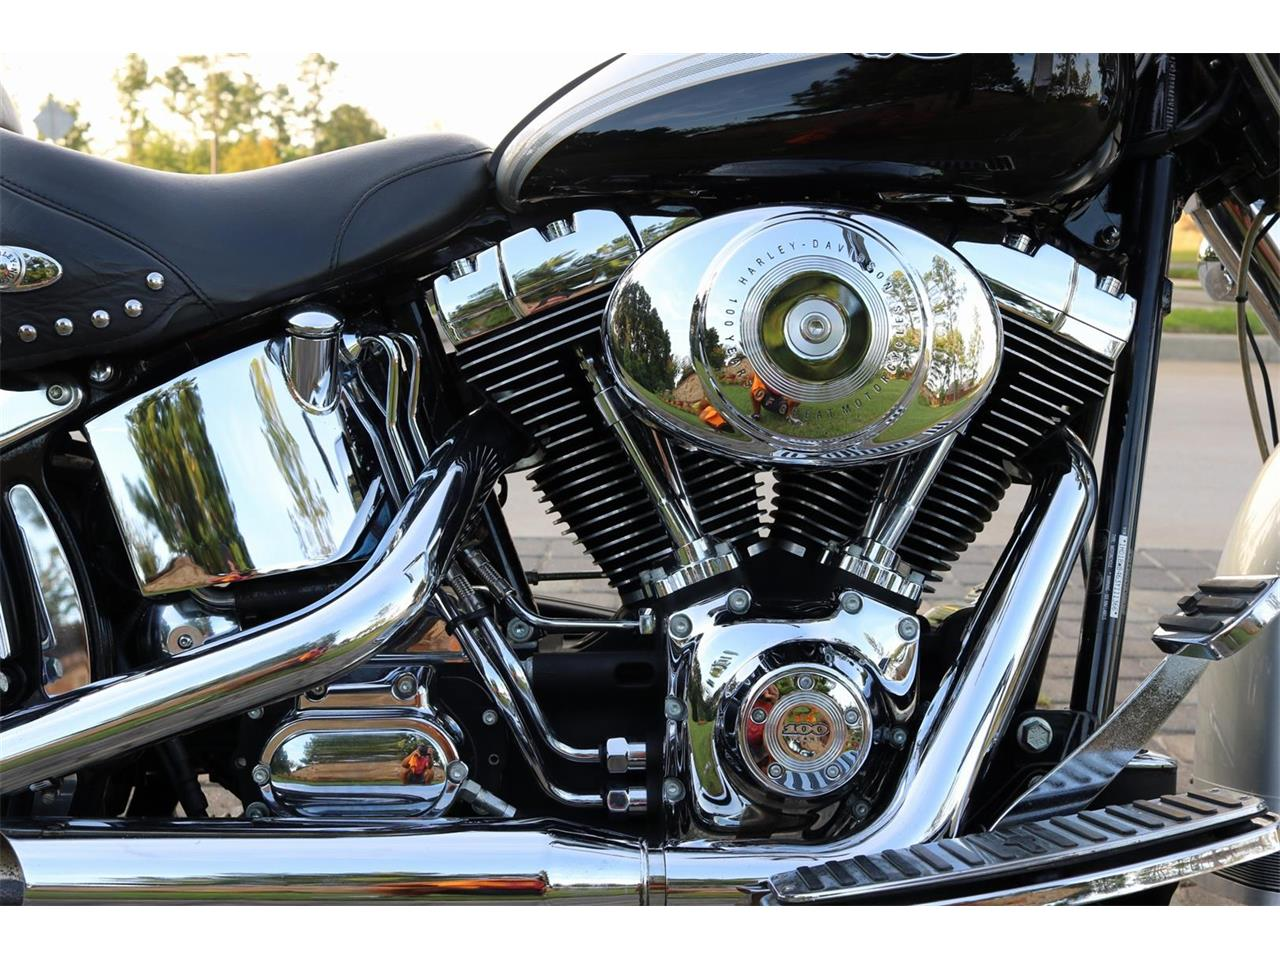 2003 Harley-Davidson FLSTCI (CC-1236833) for sale in Conroe, Texas